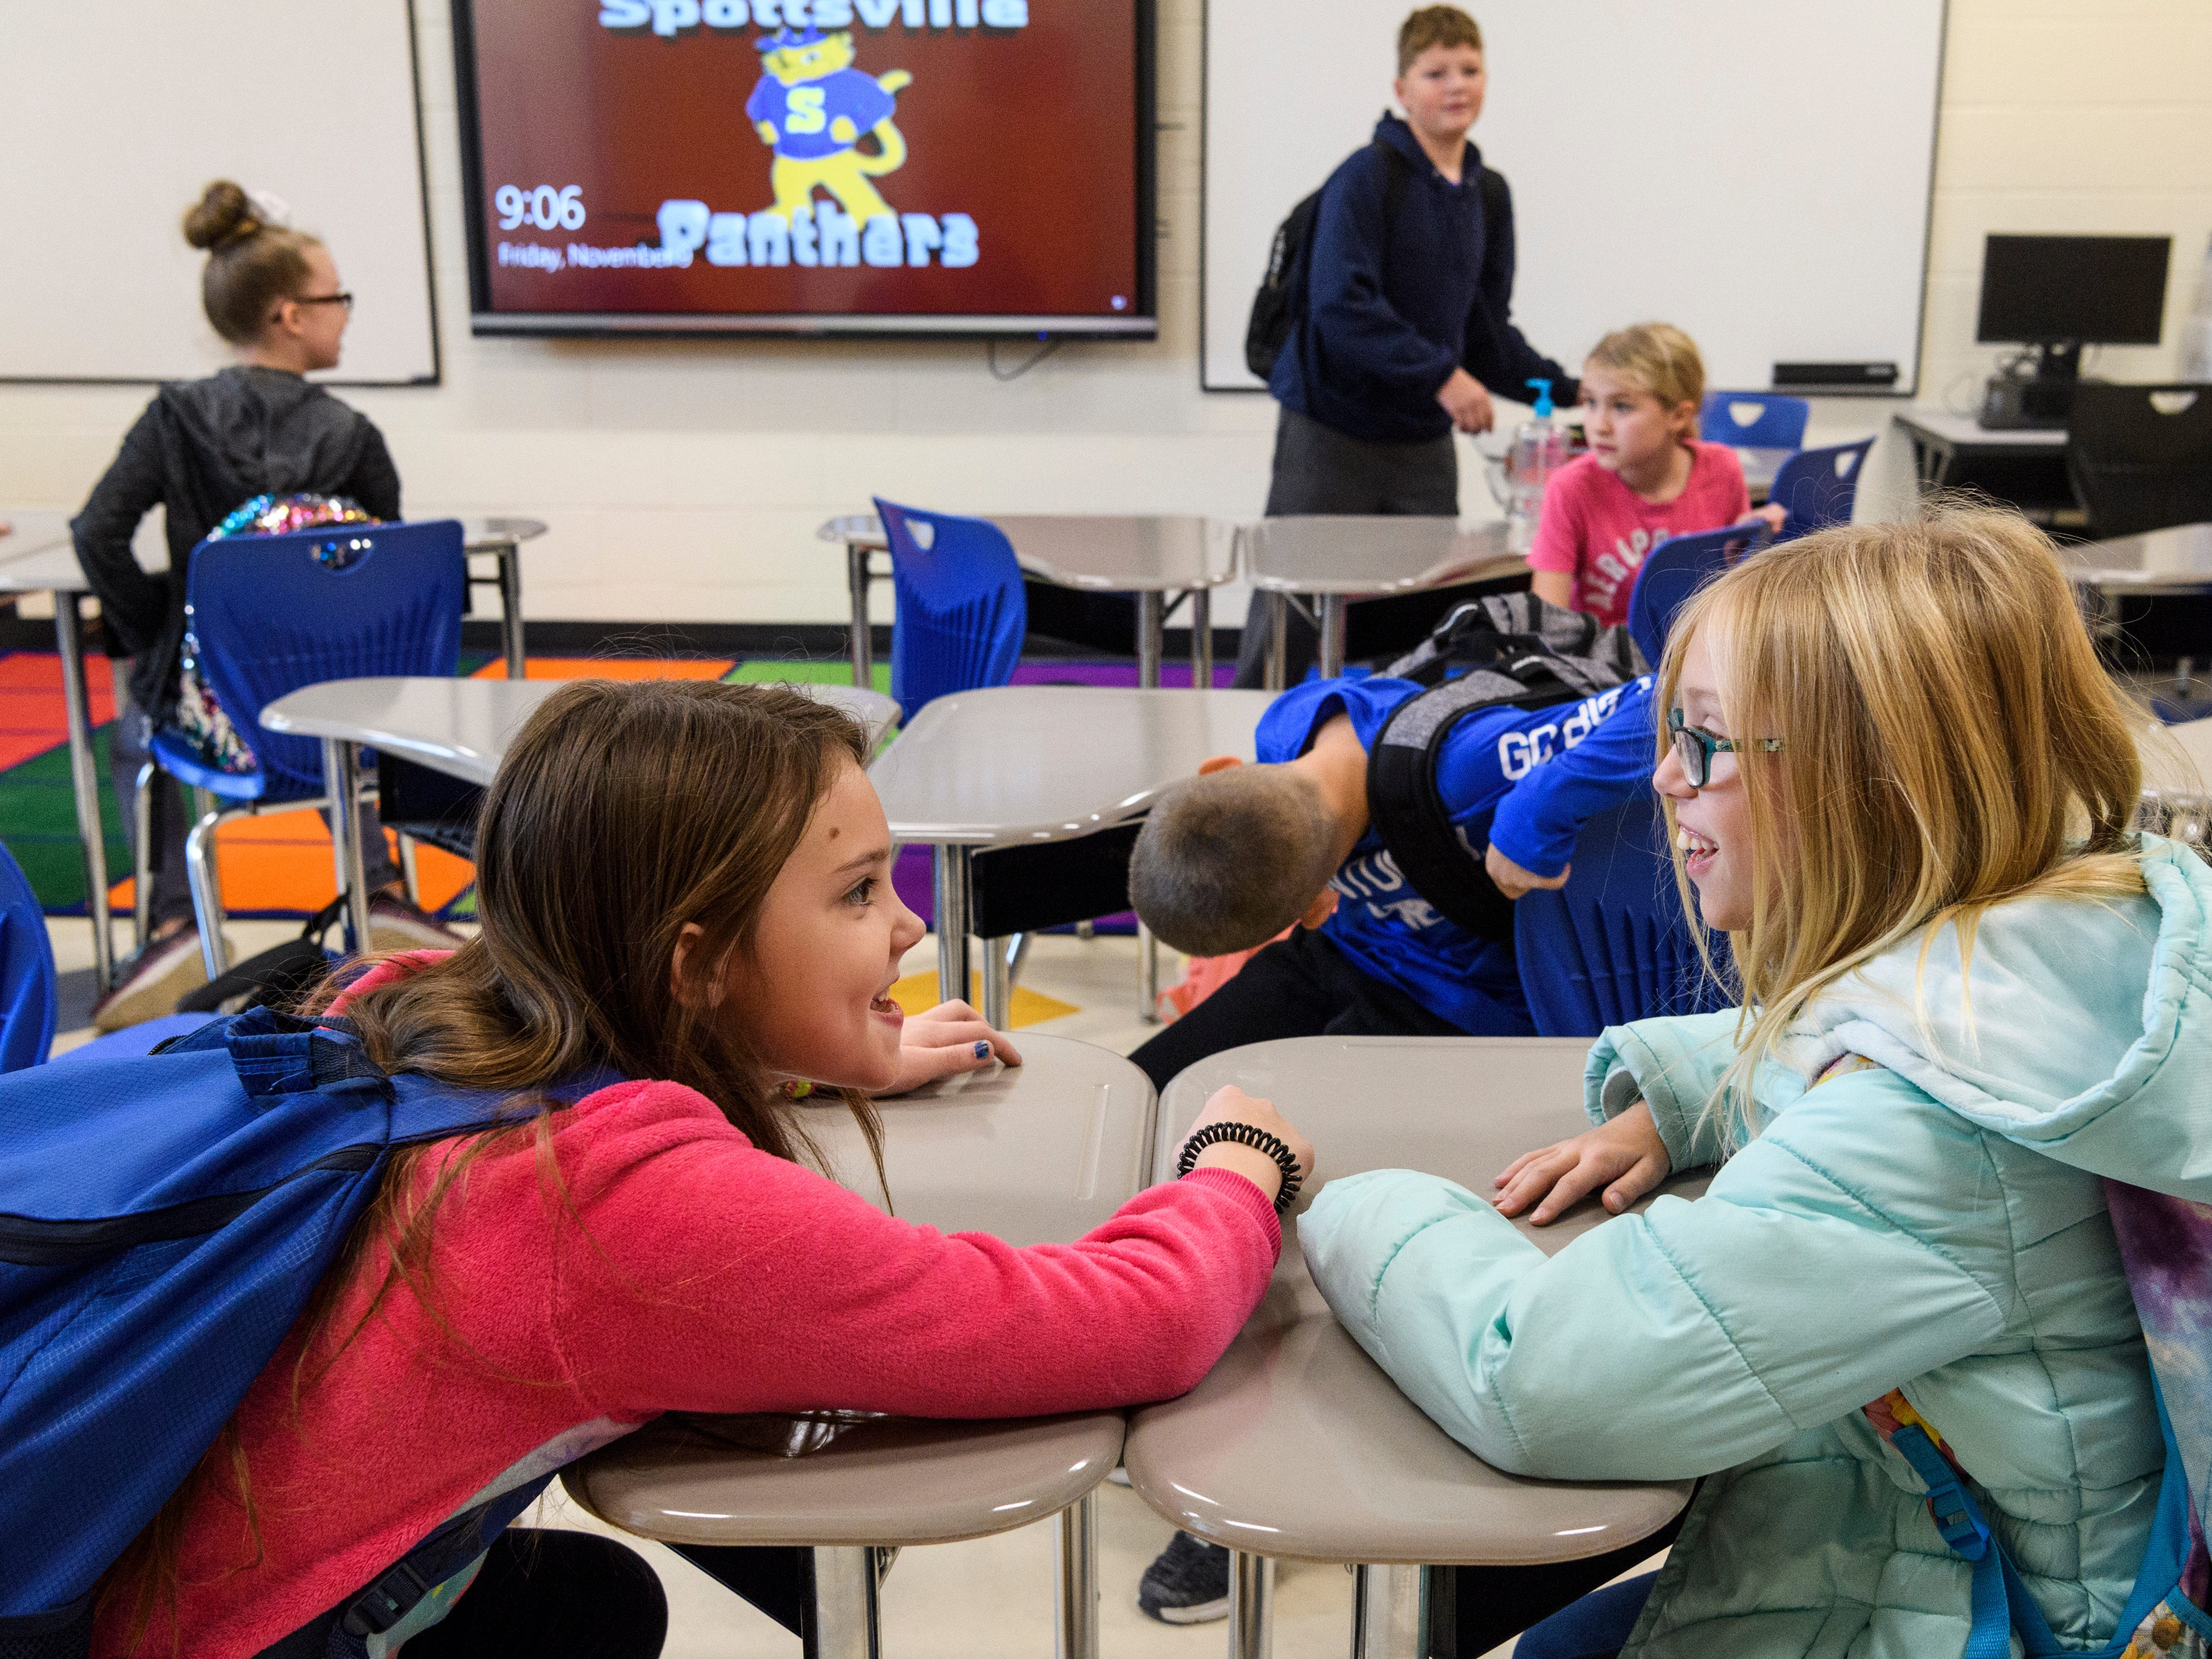 Fourth-grade students Makayla Mitchell, left, and Willow Pardue, right, chat as they get a sneak peak of their classroom in the new Spottsville Elementary School building, Friday, Nov. 9, 2018. The students used part of their early dismissal day to move items into their teacher Katie Kirkwood's classroom in preparation for the Monday, Nov. 12, move.